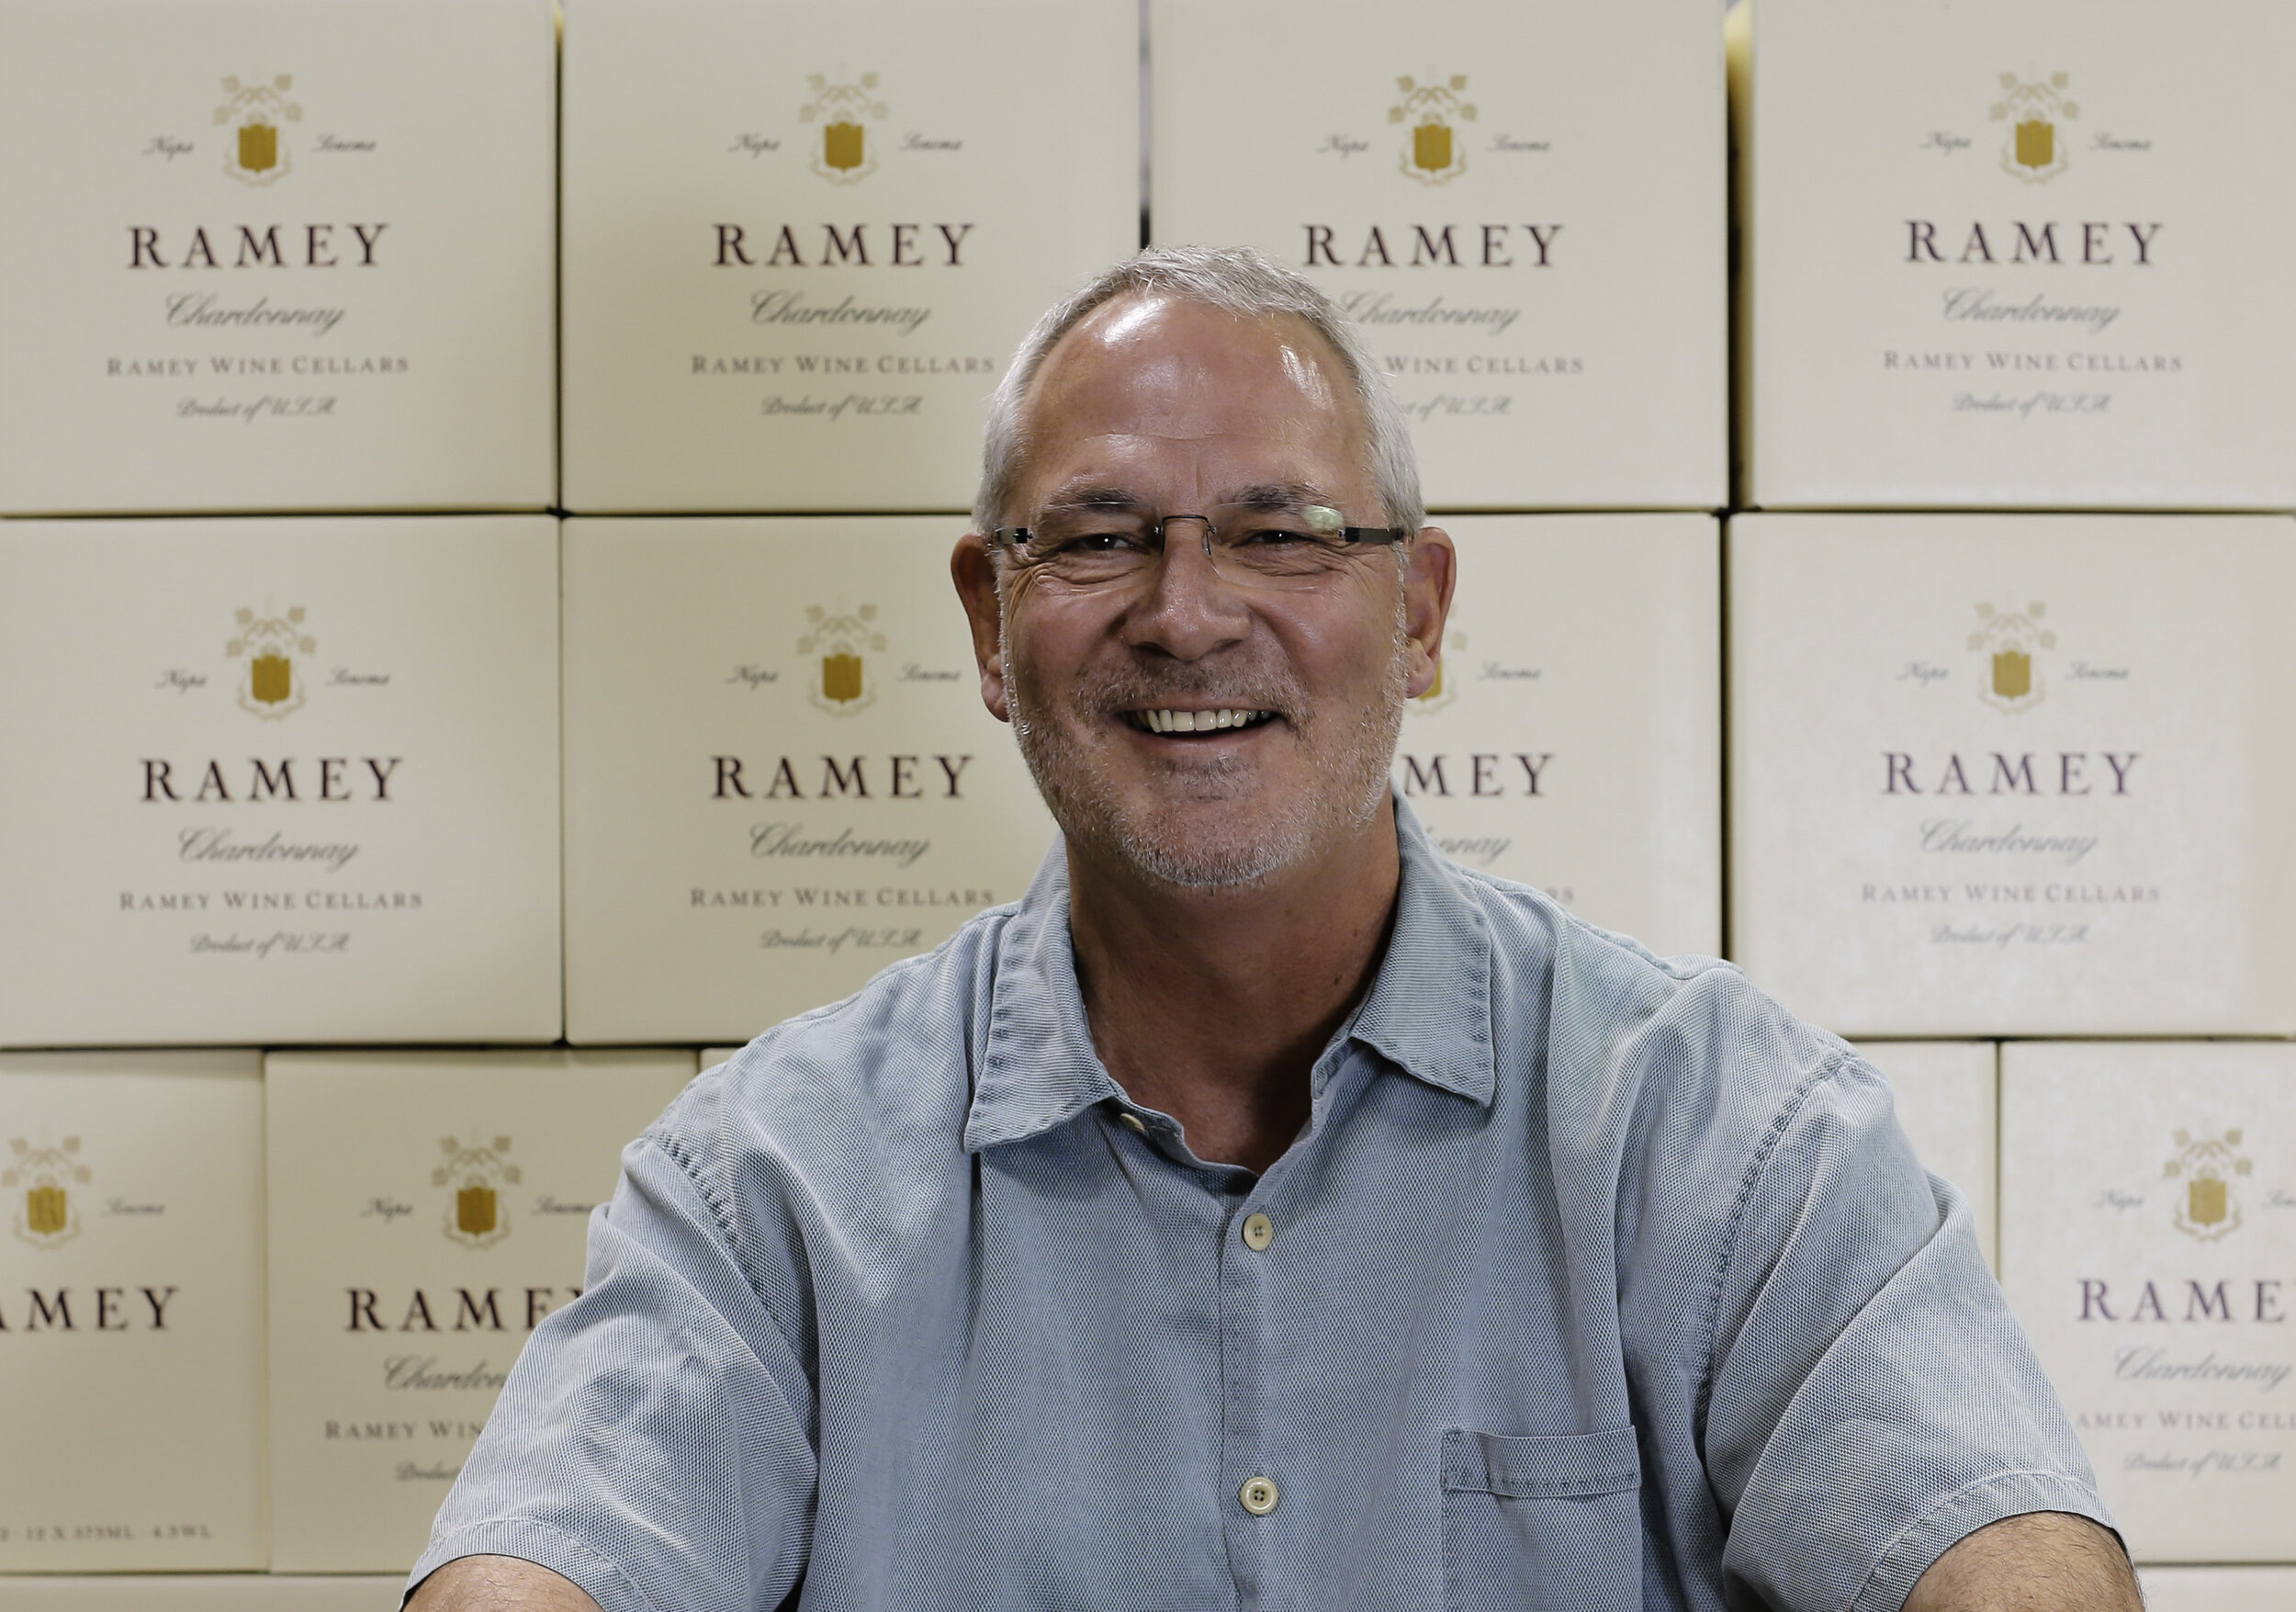 Eminent winemaker, David Ramey, is one of the Chardonnay masters of the world.